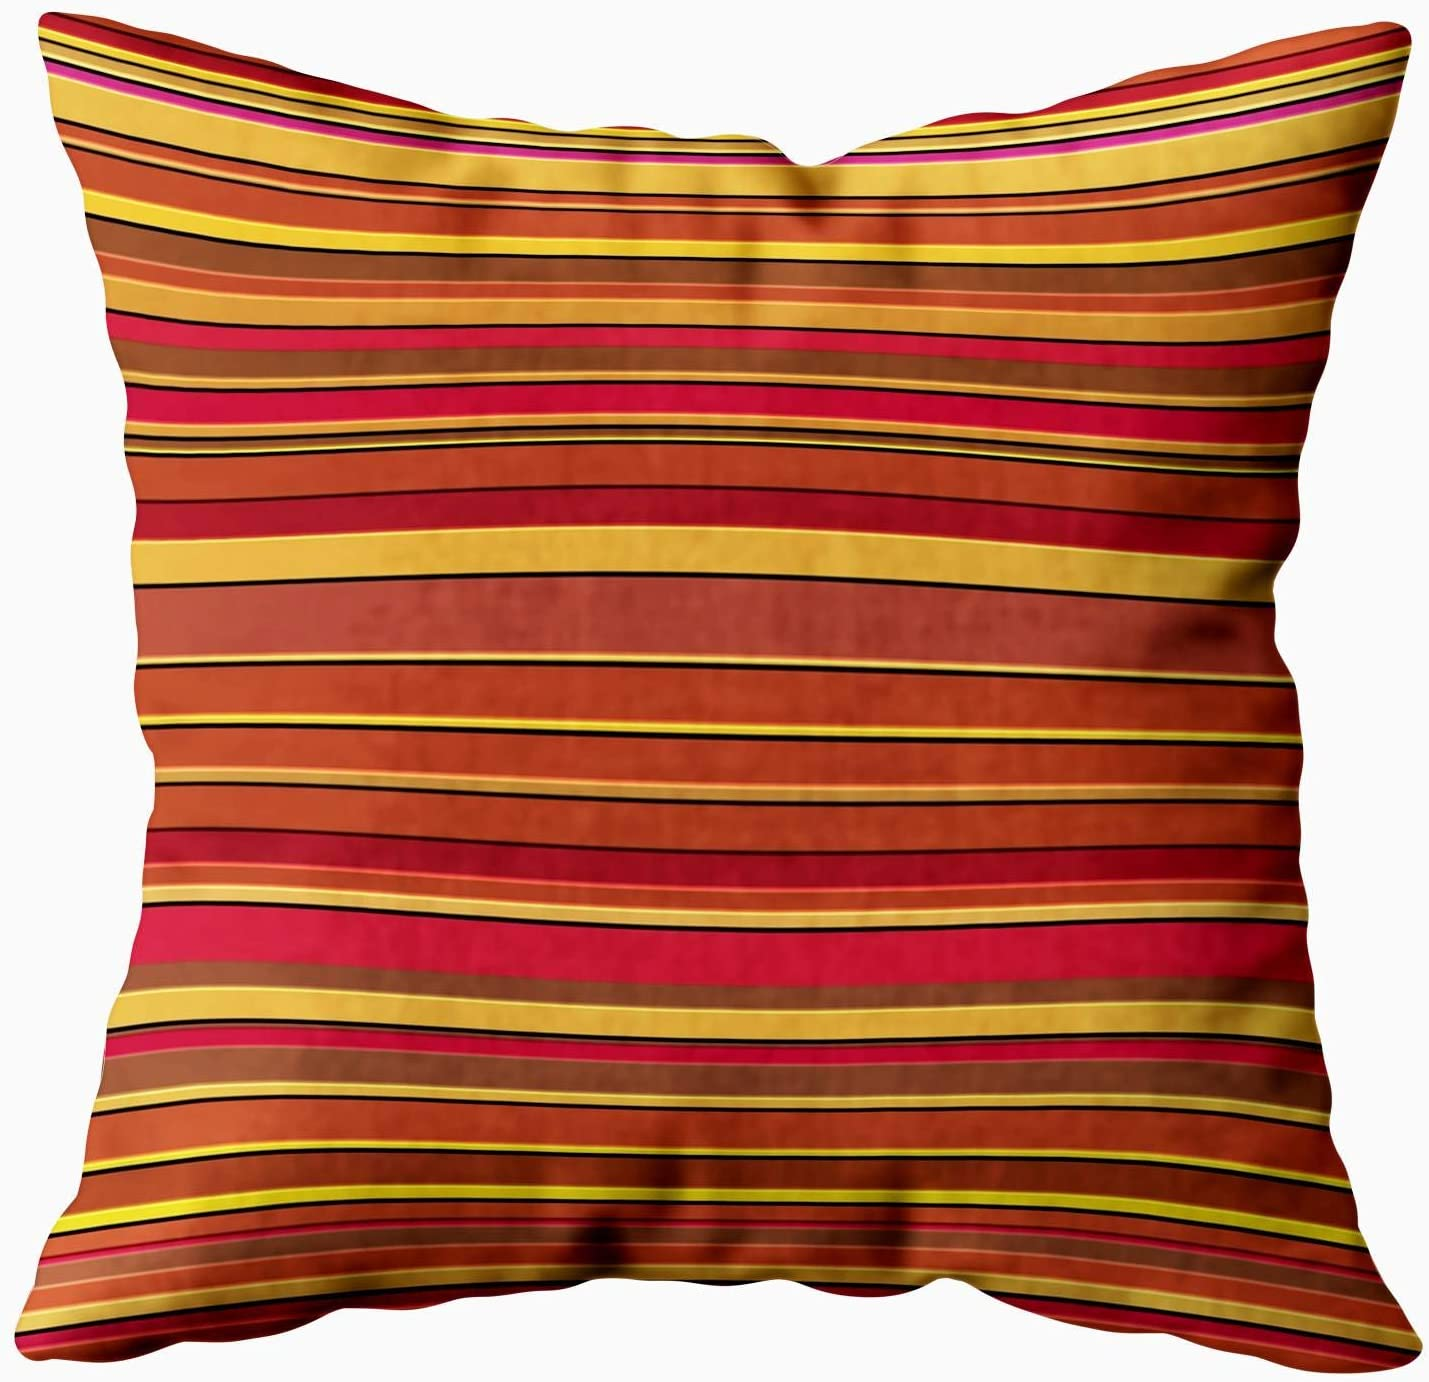 Douecish Boho Red Pillow Abstract Striped Background Line Design 3d Raised Texture Cool Fun Birthday Pinstripe Throw Pillow Covers Cushion Soft Home Sofa Decorative Throw Pillow Cases Home Kitchen